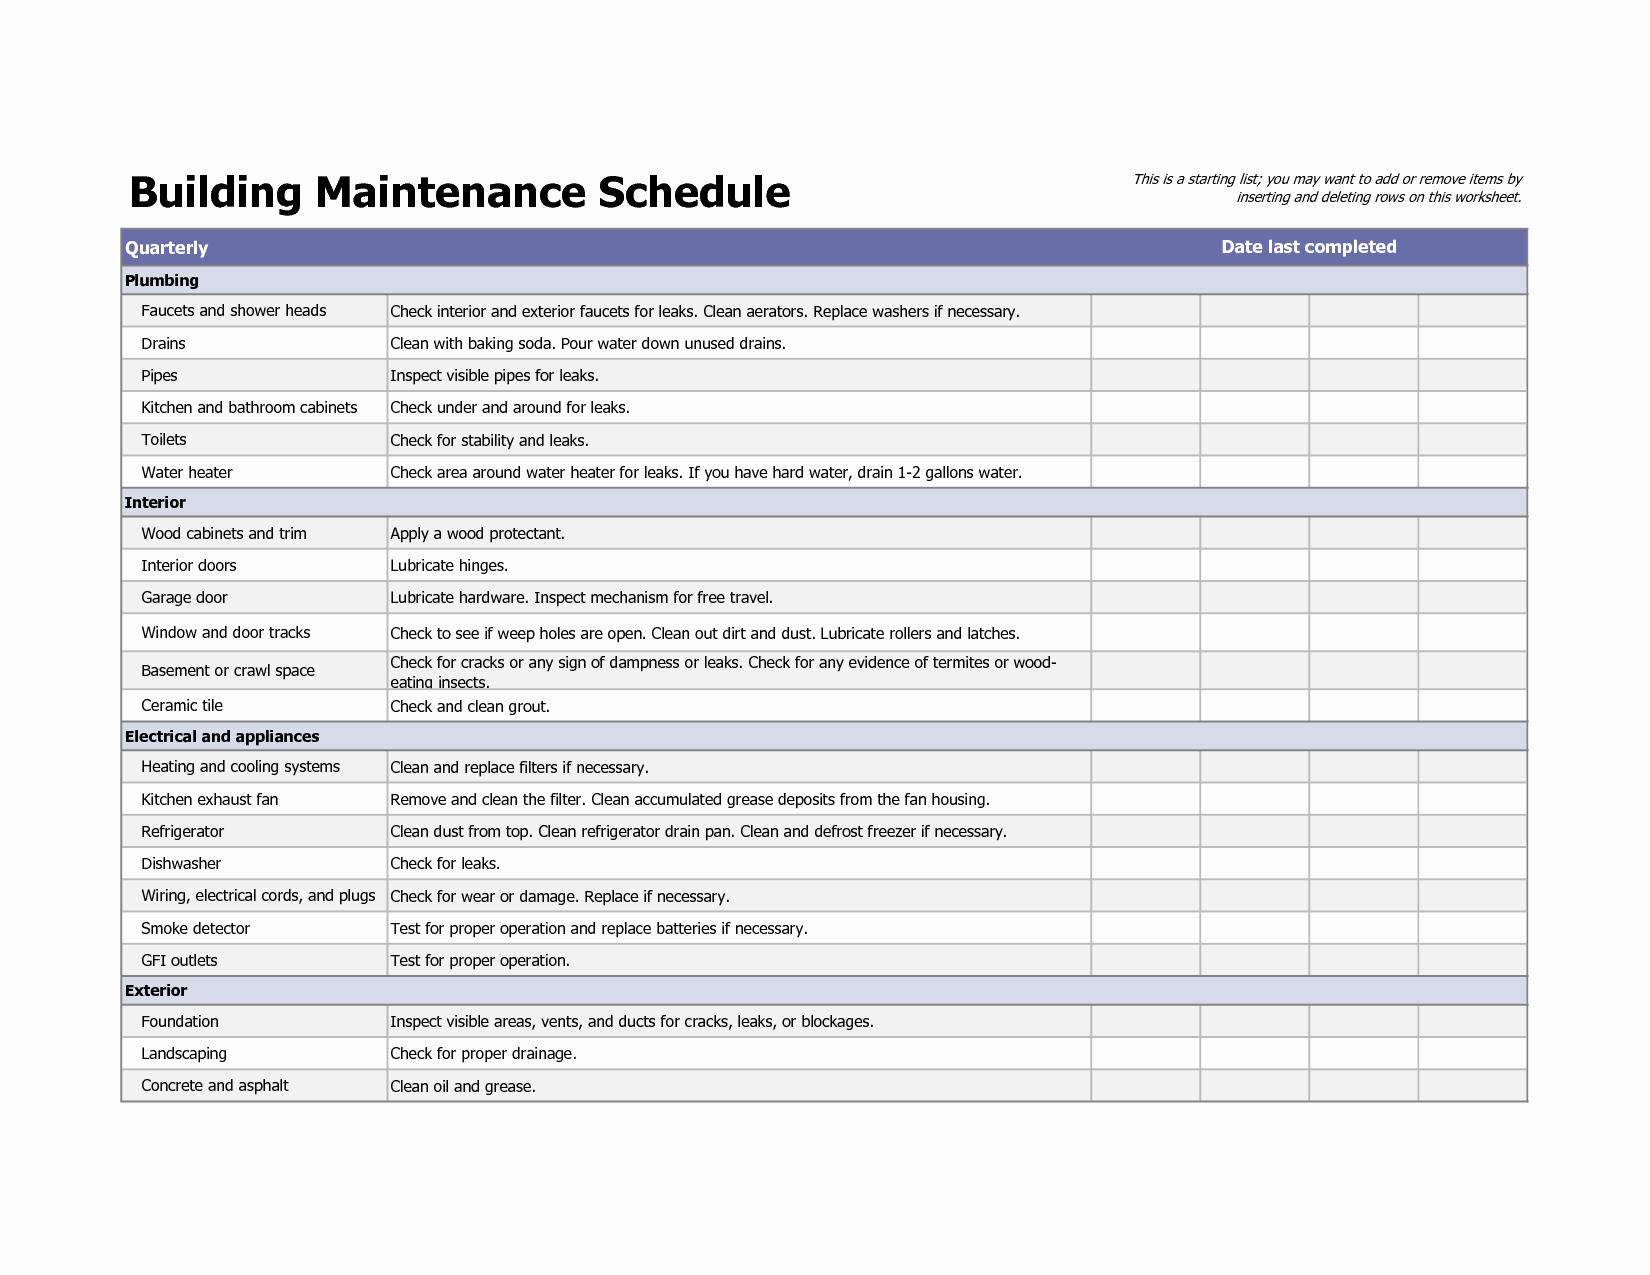 Facility Maintenance Checklist Template Fresh Building Maintenance Schedule Excel Template